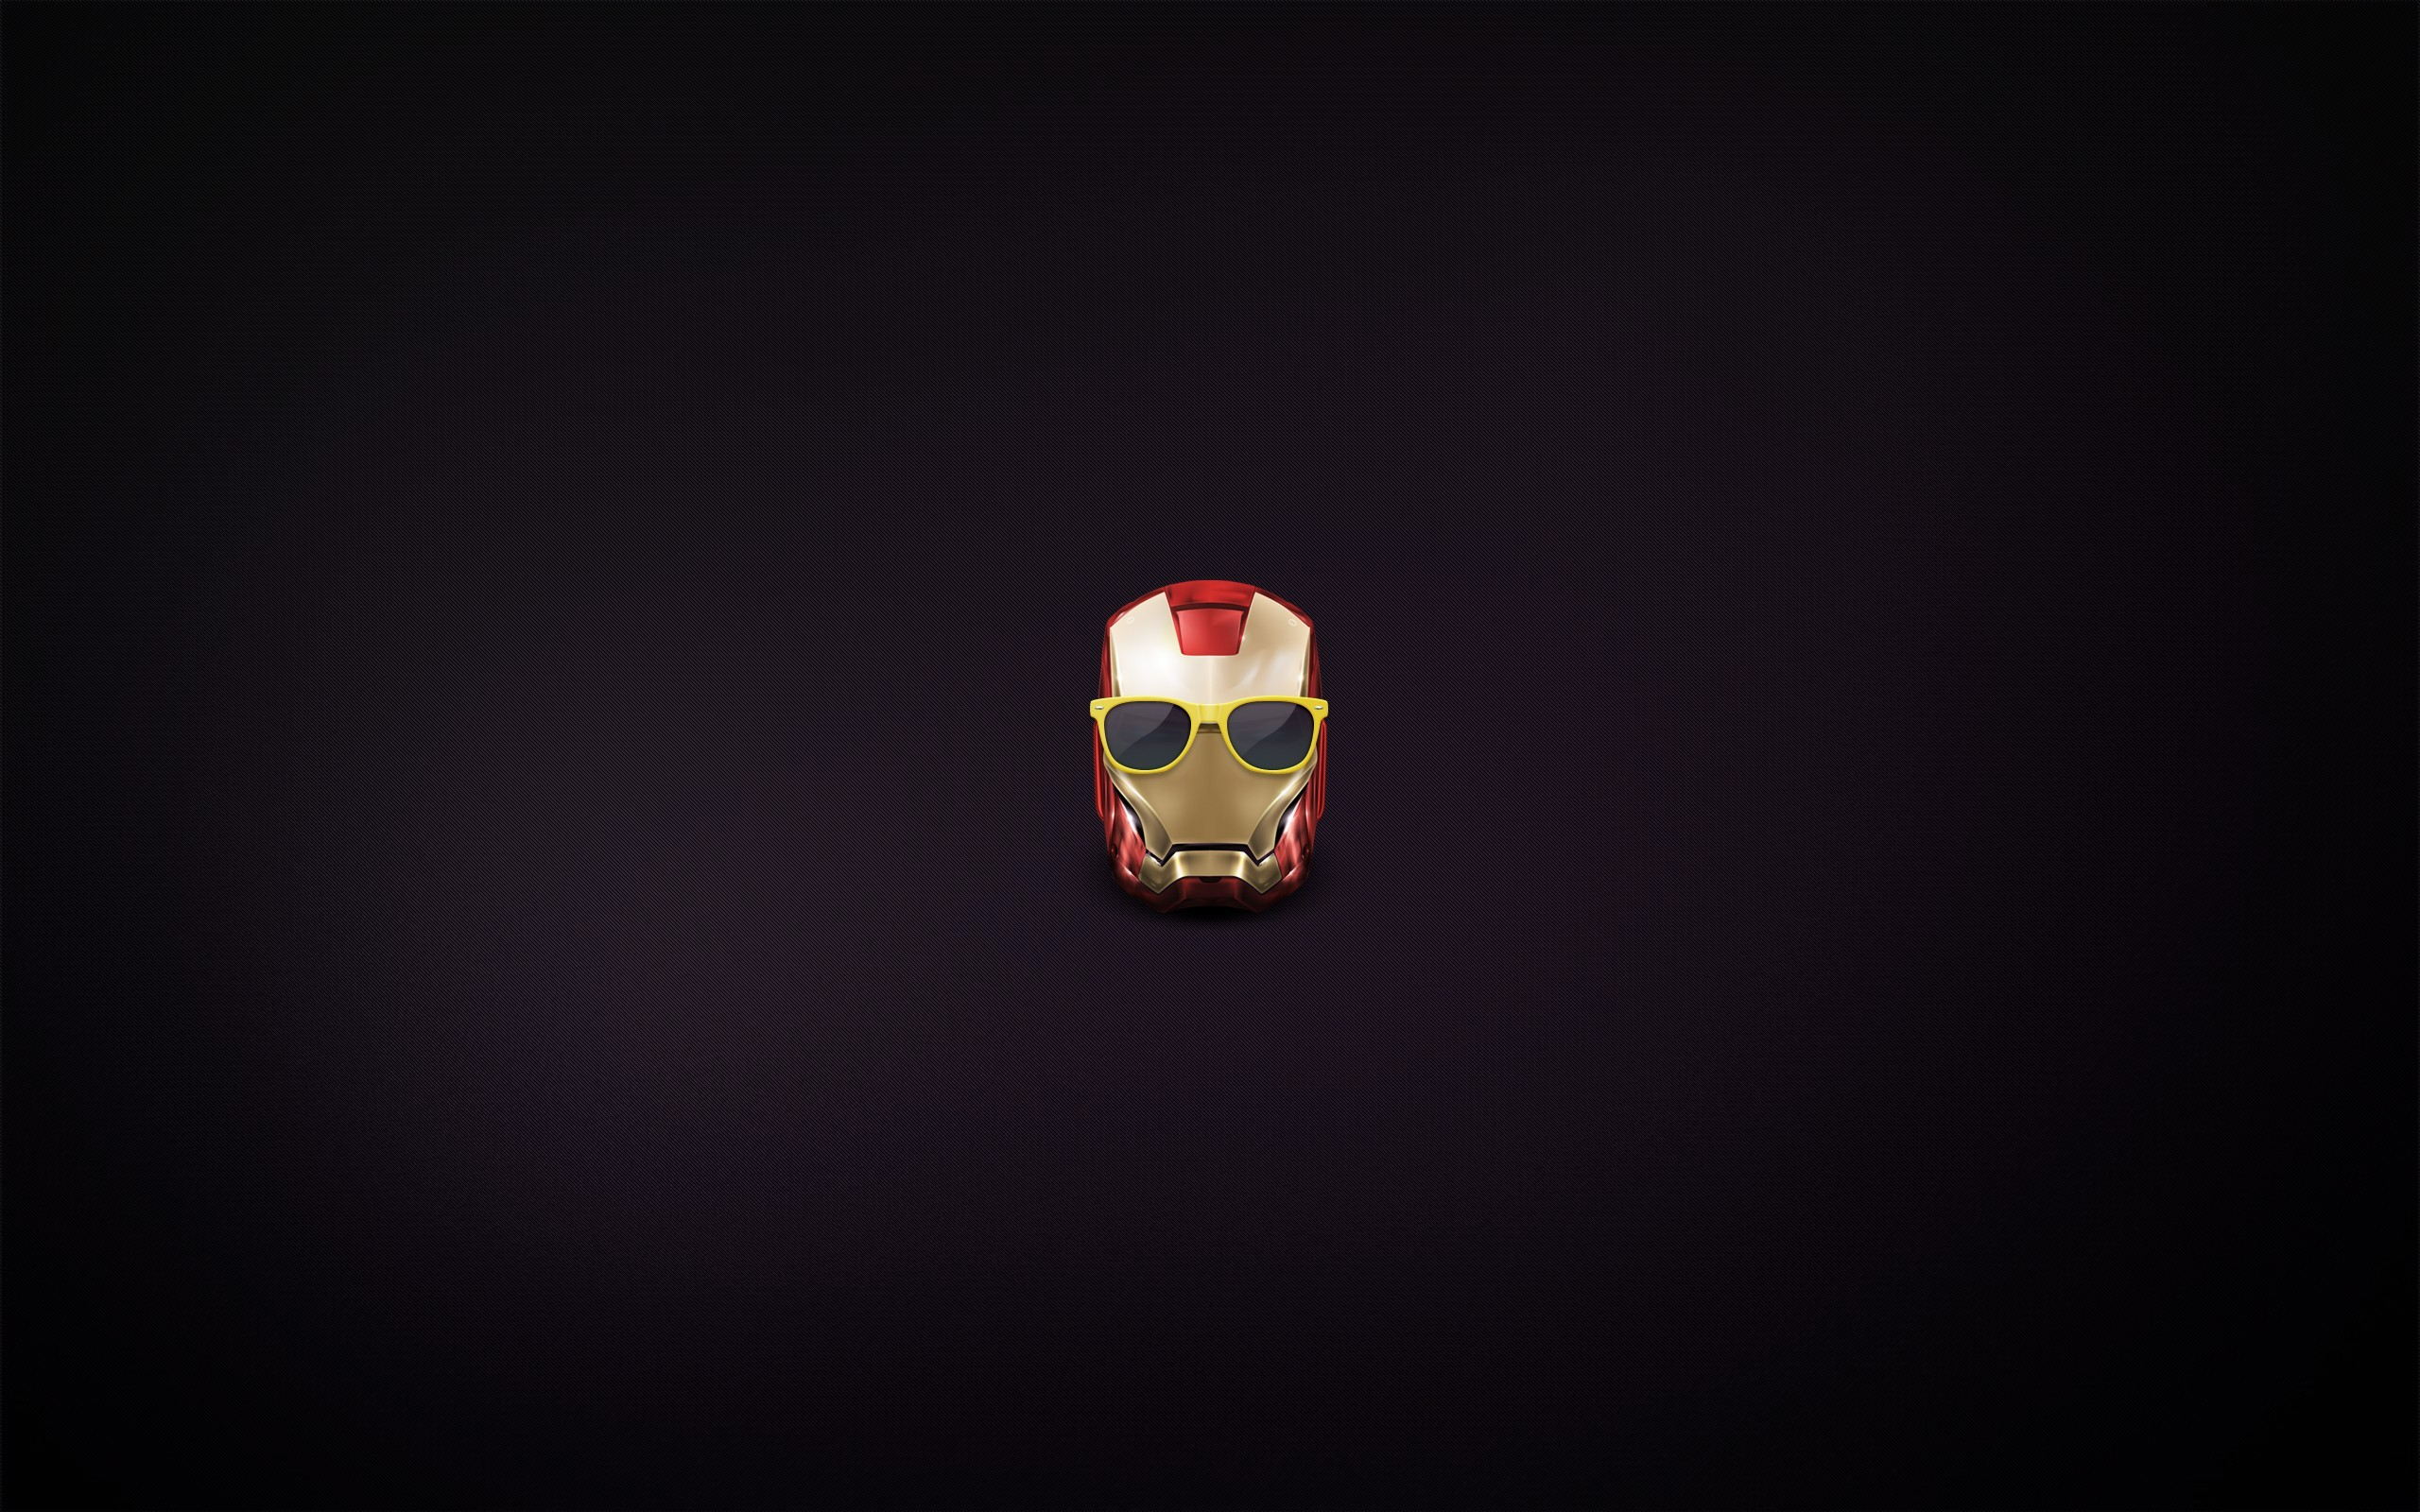 Minimalistic iron man mod glasses marvel comics wallpaper - Iron man heart wallpaper ...